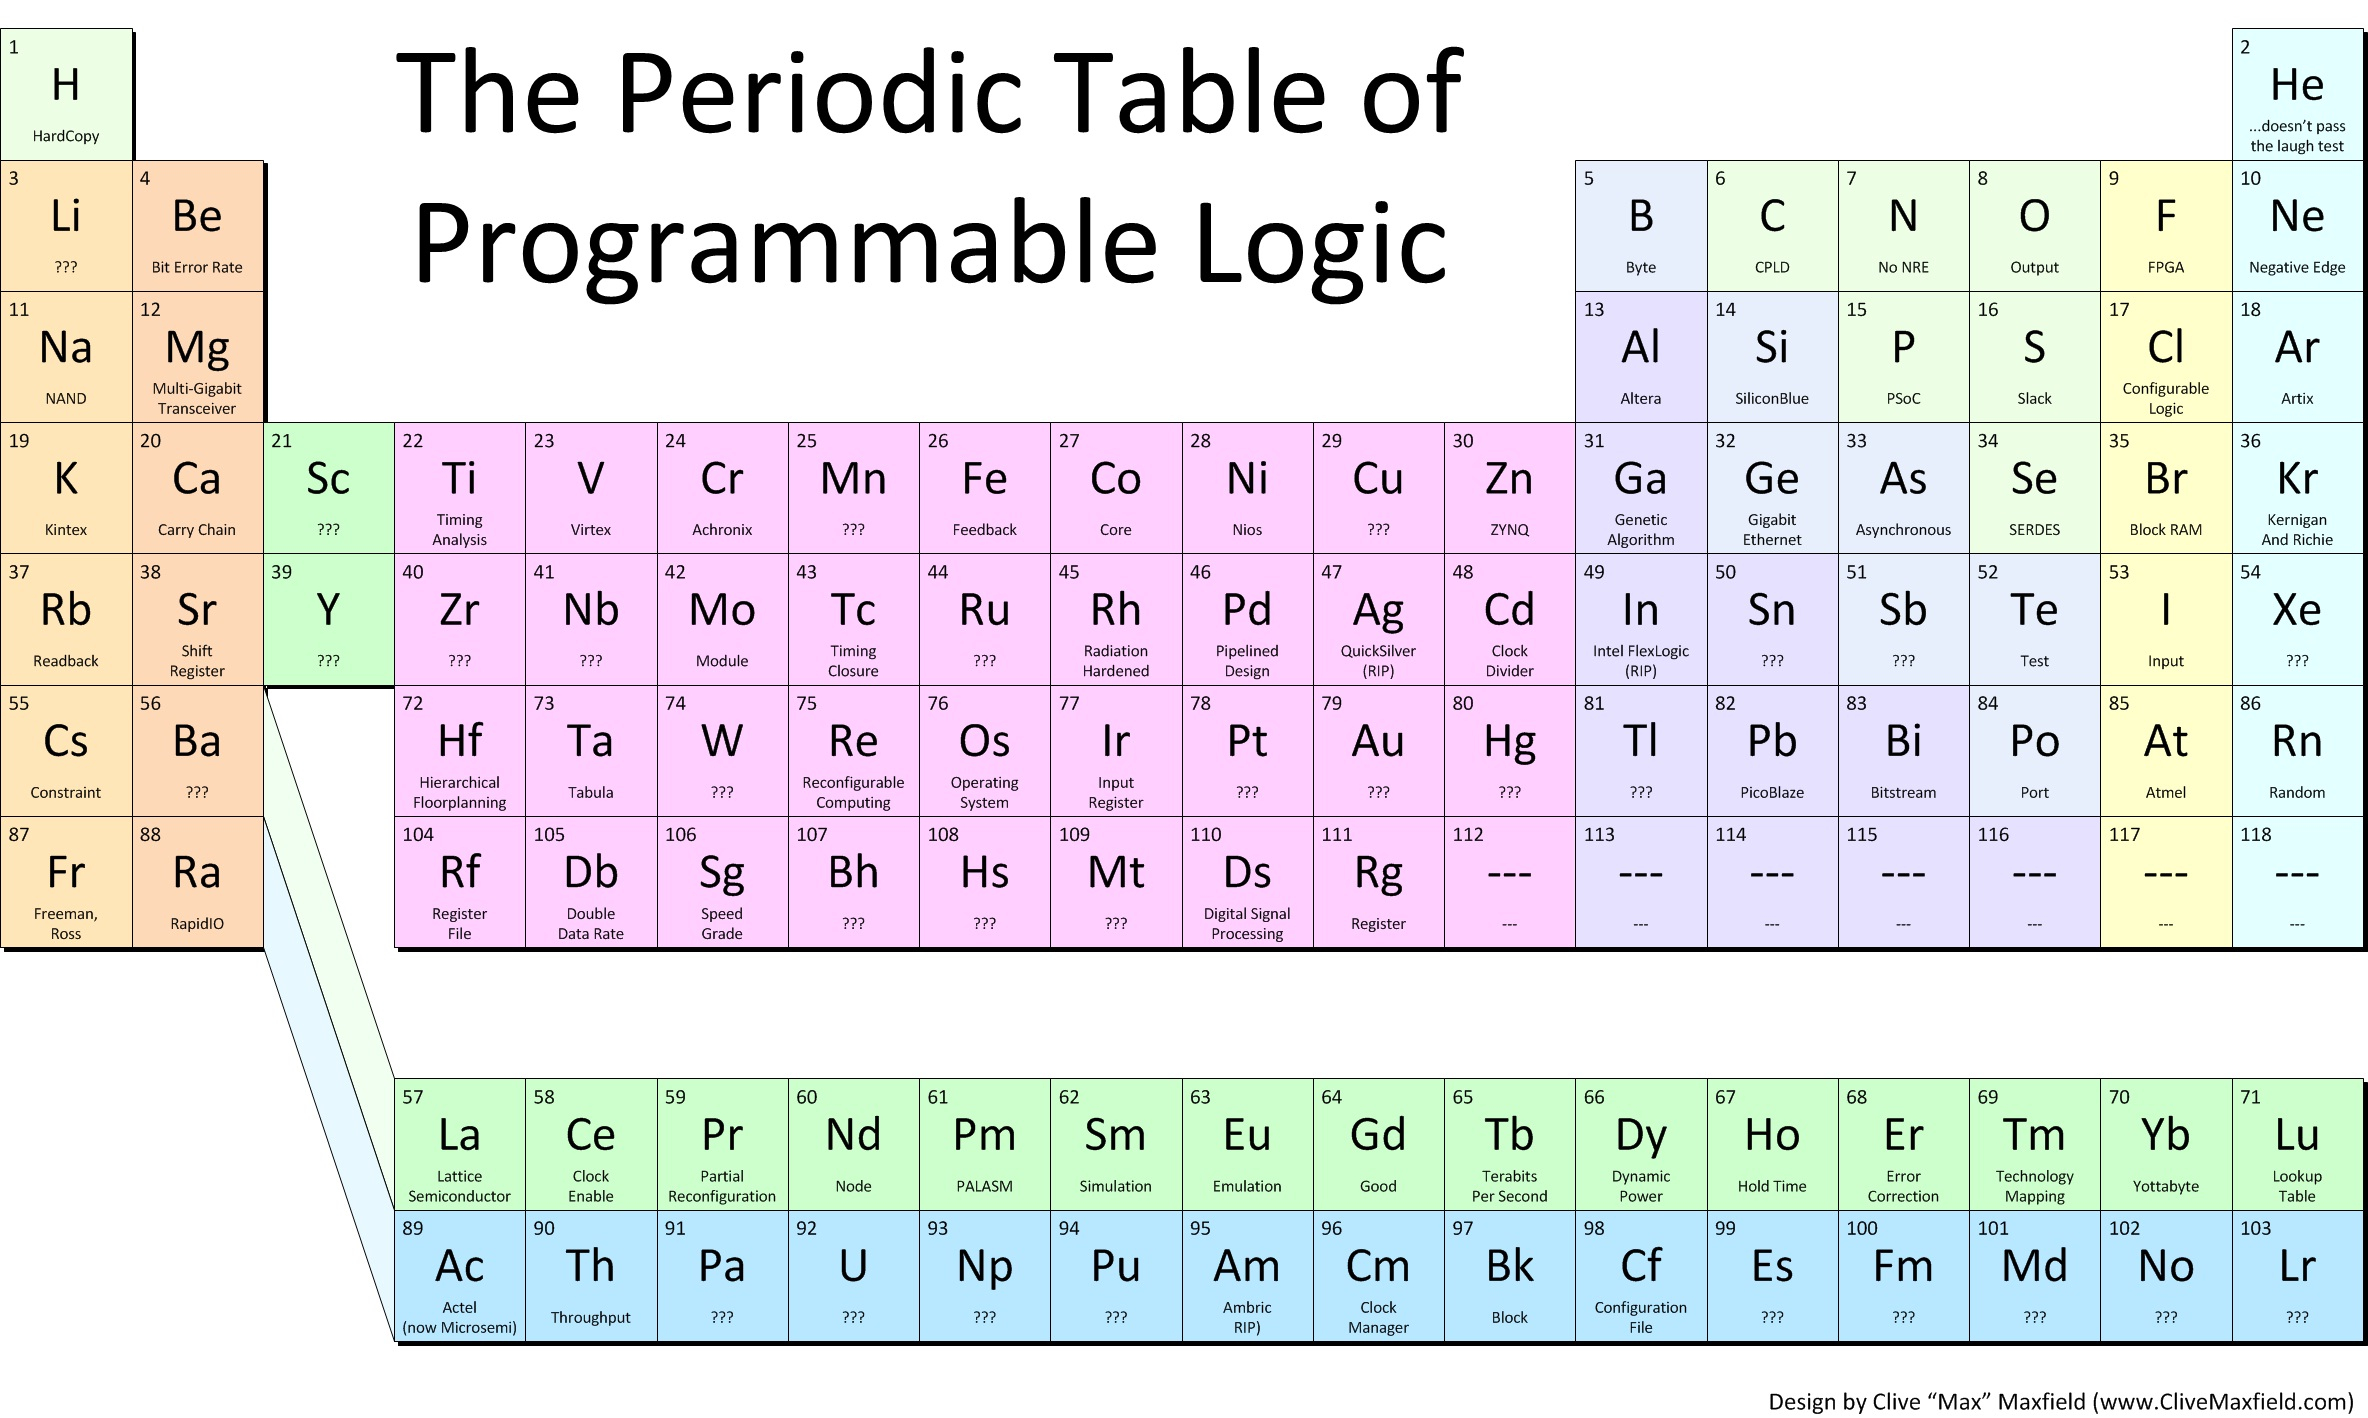 The periodic table of programmable logic rev 1 ee times clivemaxfieldarea51periodic table prog logic v1g gamestrikefo Gallery